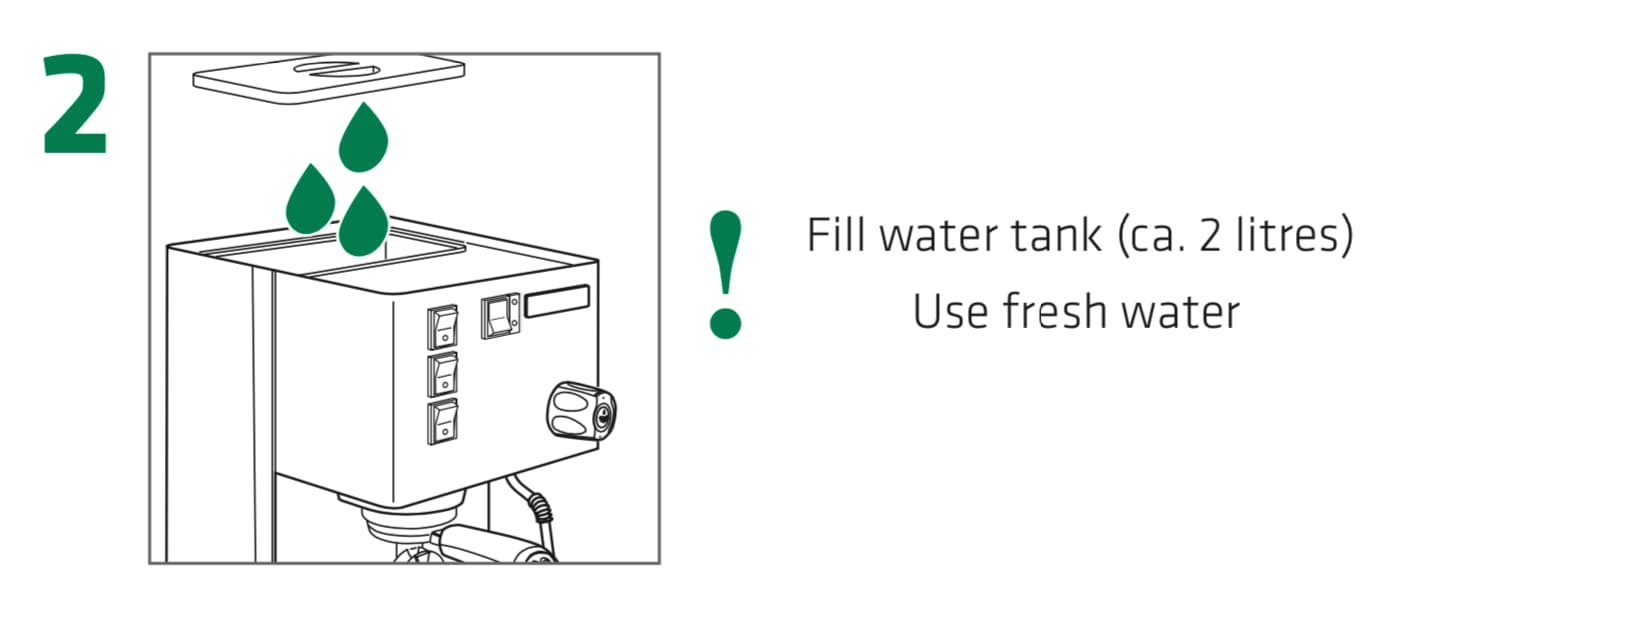 How to set up the Rancilio Silvia Espresso Machine, Step 2 : Fill the water reservoir tank ( 2 liters ) Use fresh water.